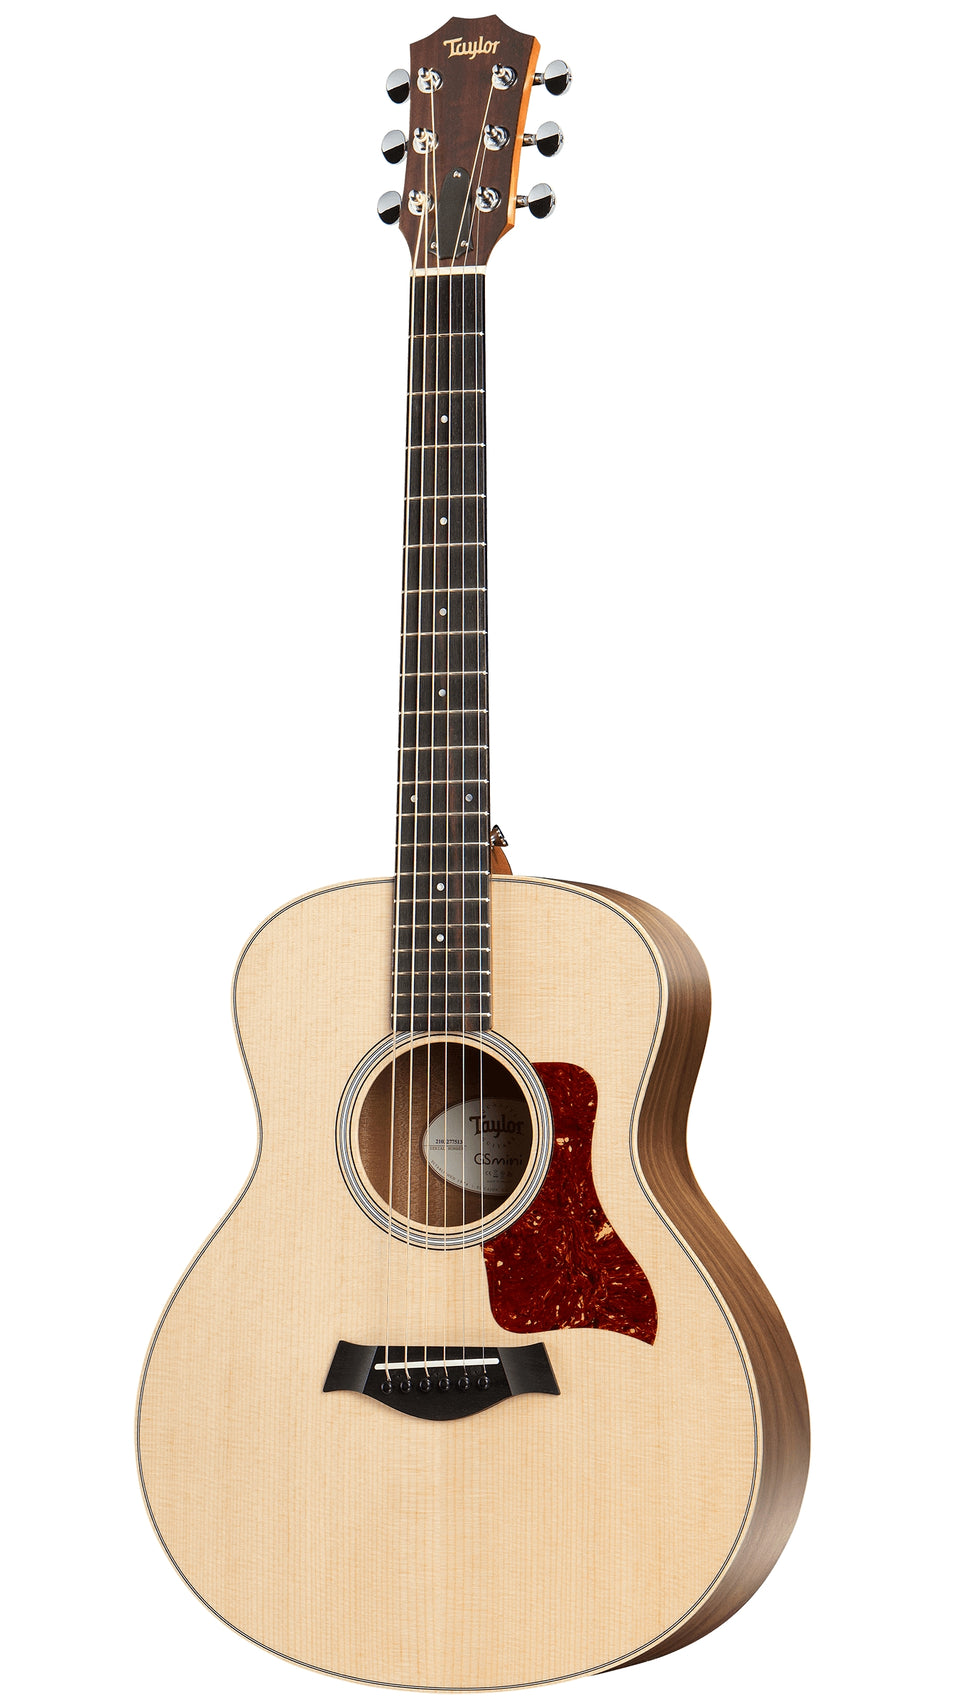 Taylor GS MINI-e Walnut, ES-B Acoustic/Electric Guitar